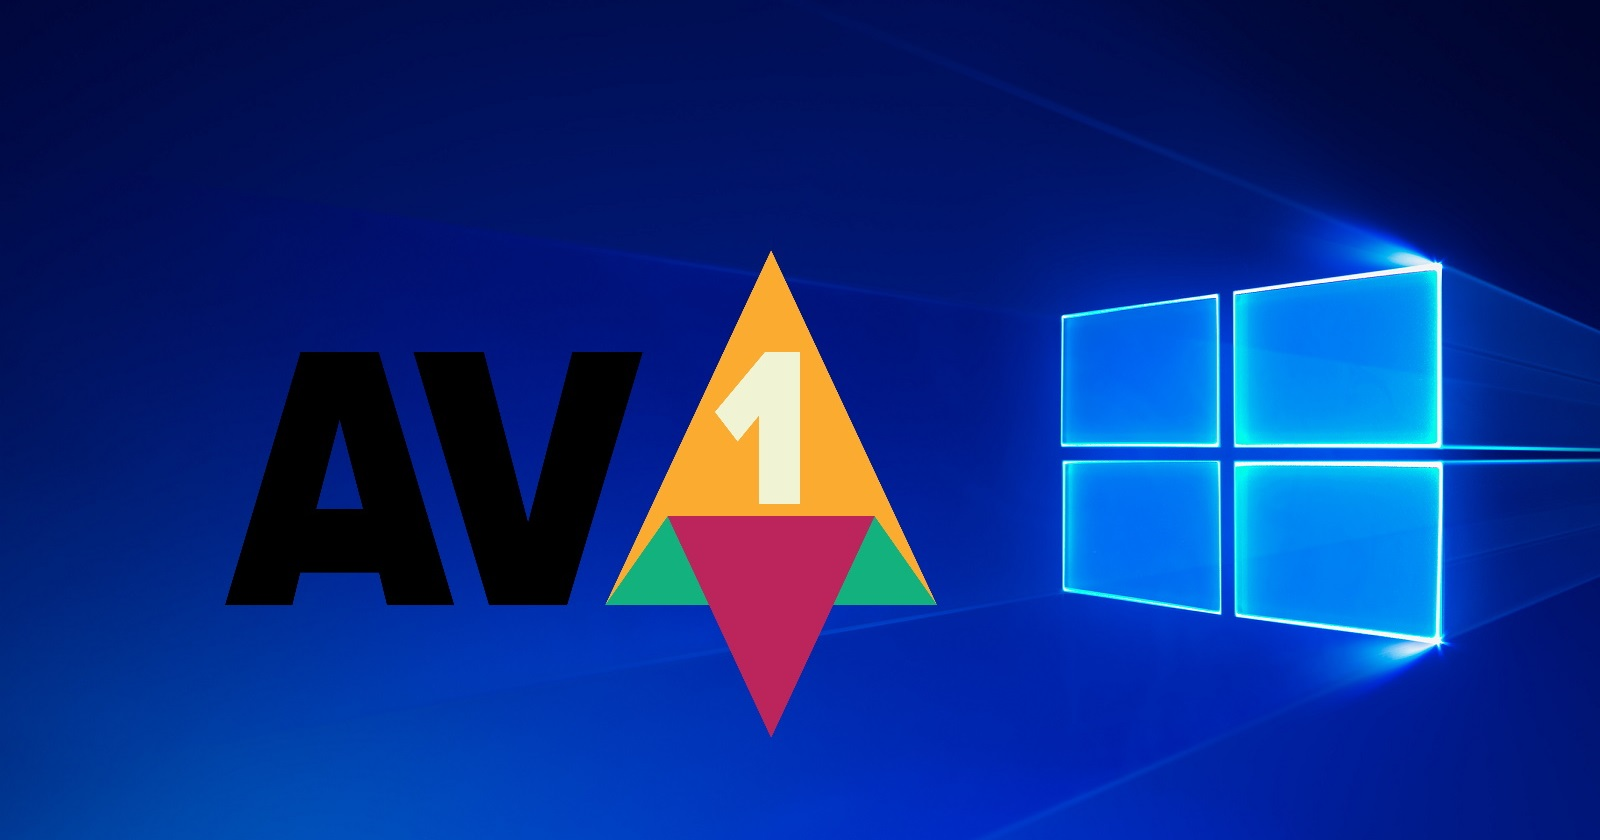 Windows 10 is getting hardware-accelerated AV1 video streaming support